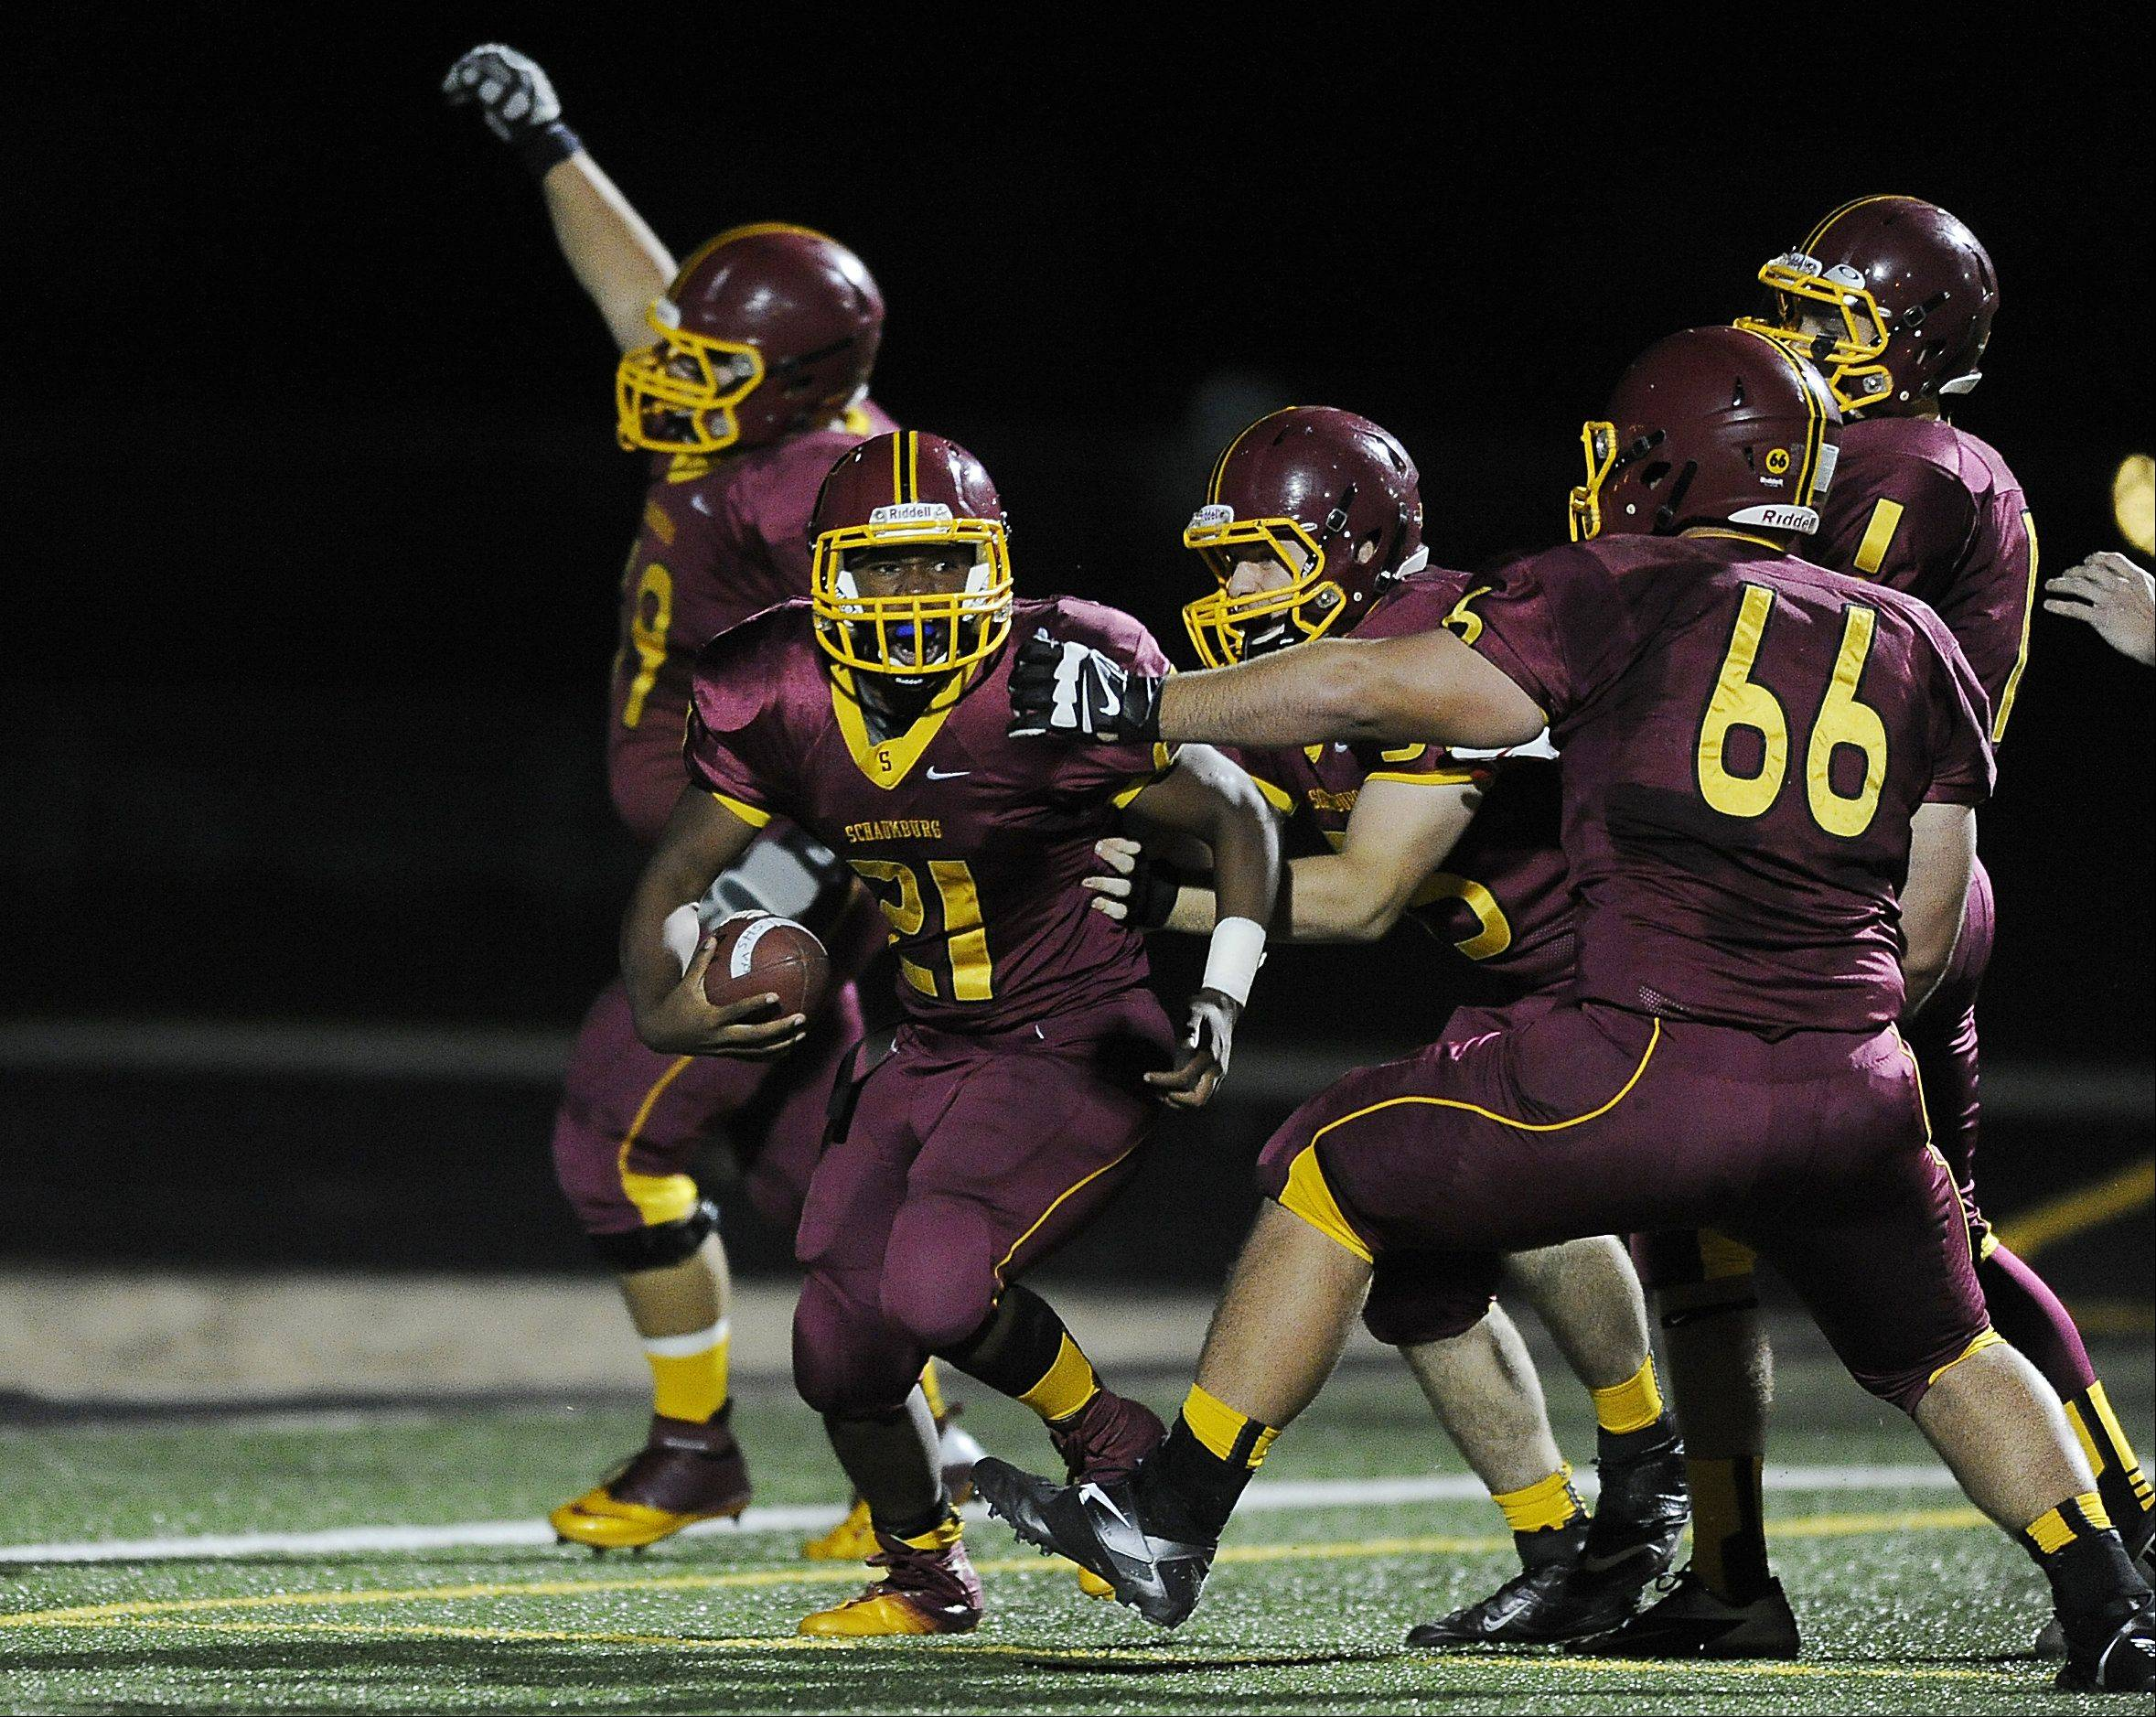 Schaumburg's Justice Macneal-Young celebrates a first-quarter touchdown.